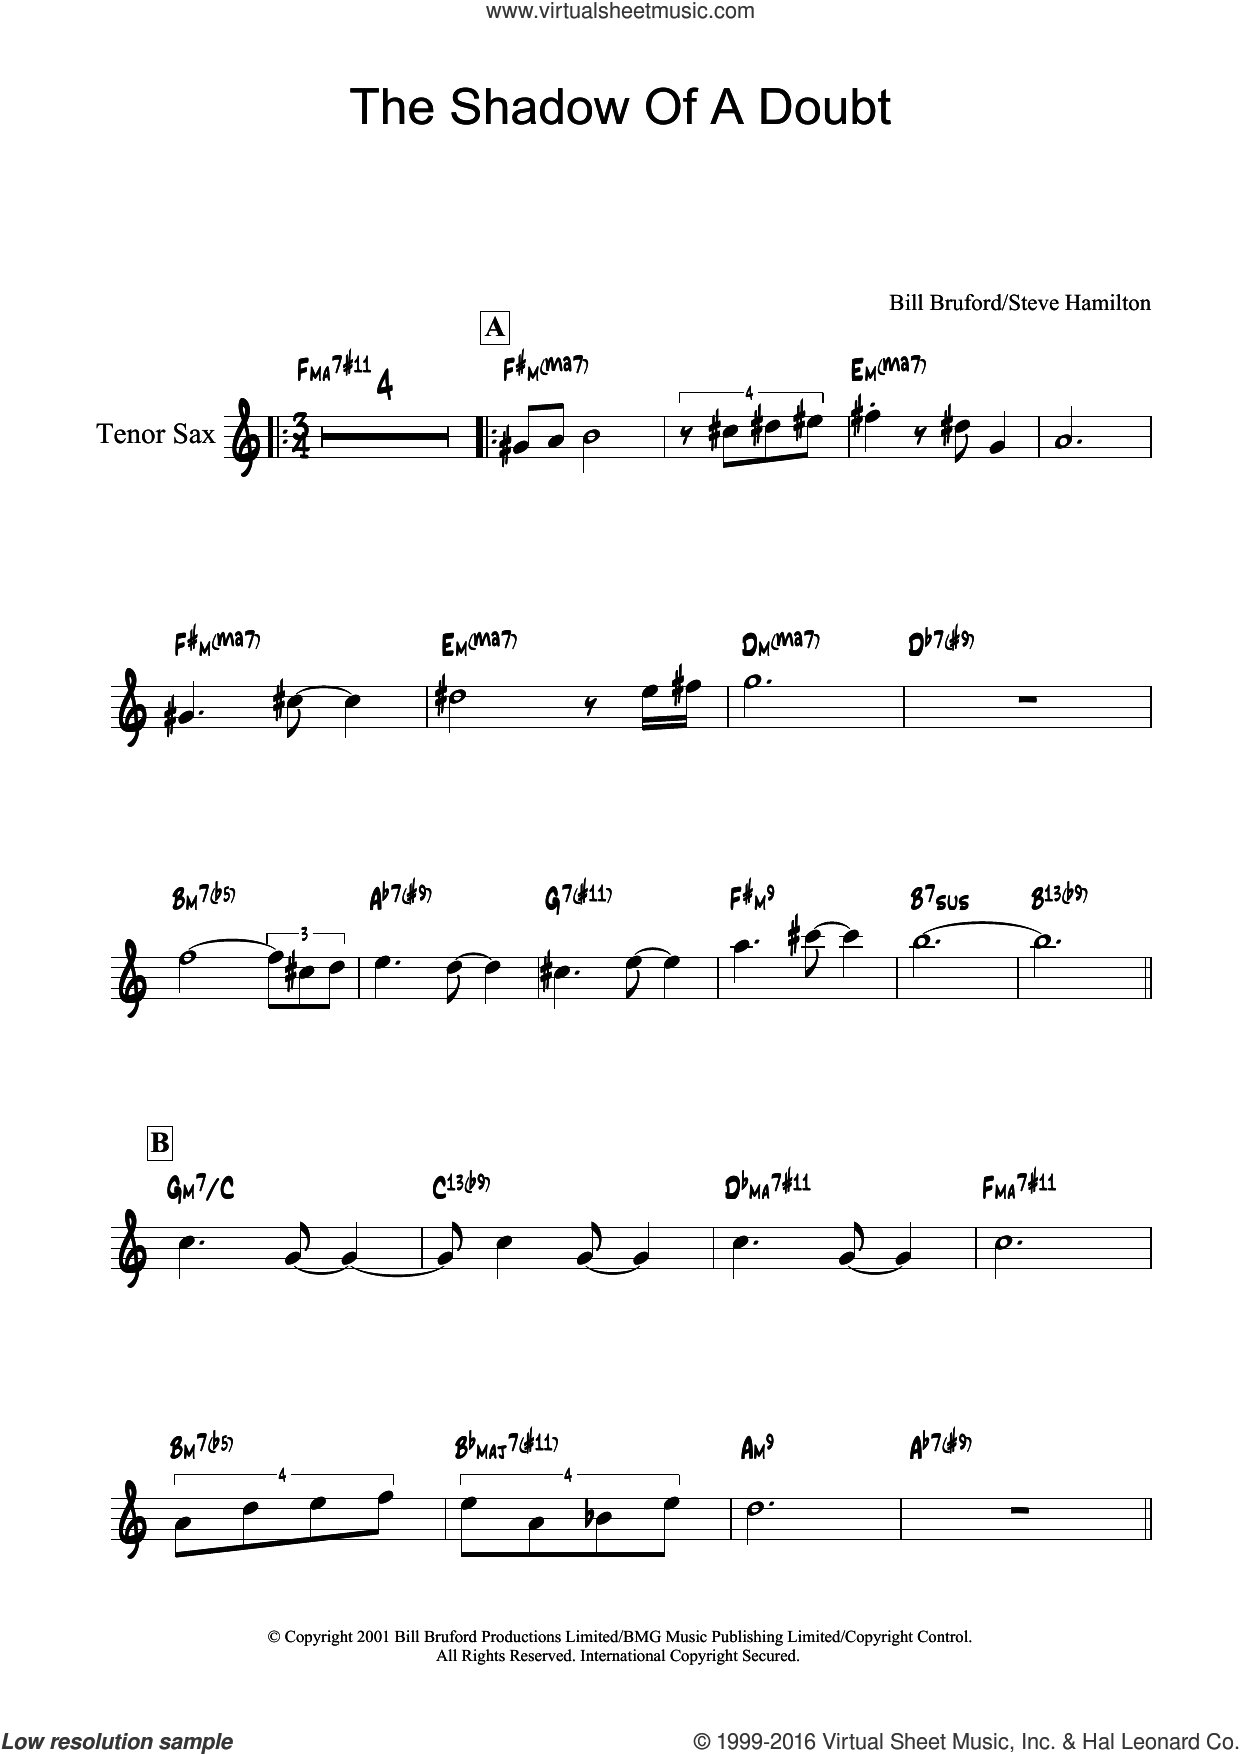 The Shadow Of A Doubt sheet music for tenor saxophone solo by Steve Hamilton